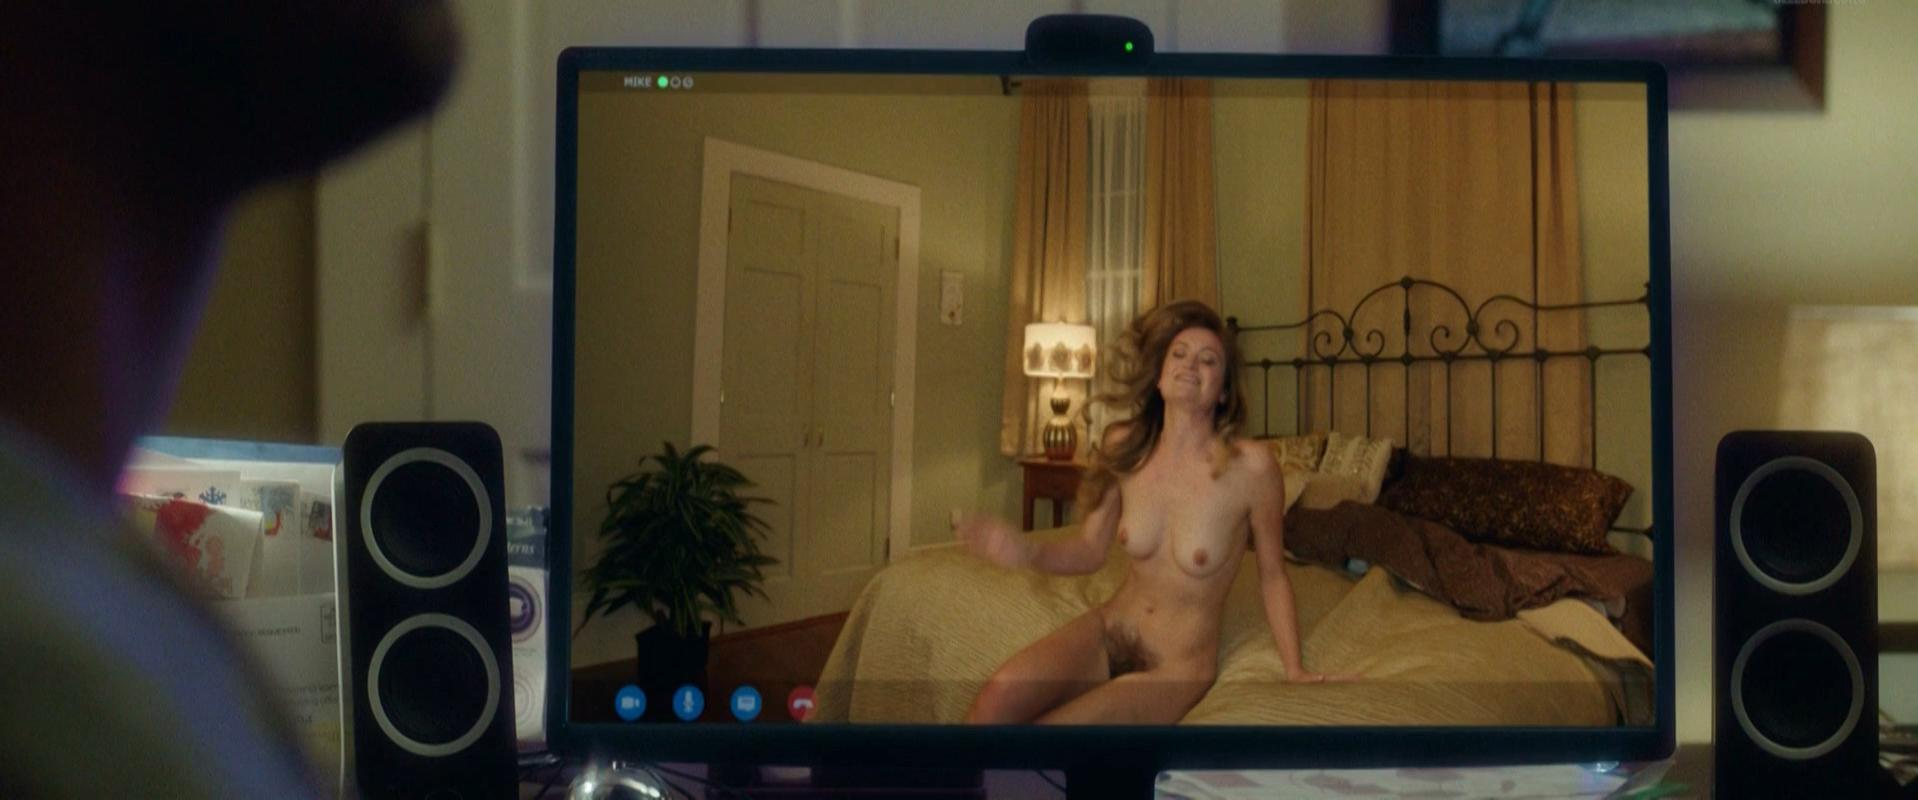 Nude Video Celebs  Leah Mckendrick Nude - Bad Moms 2016-8656